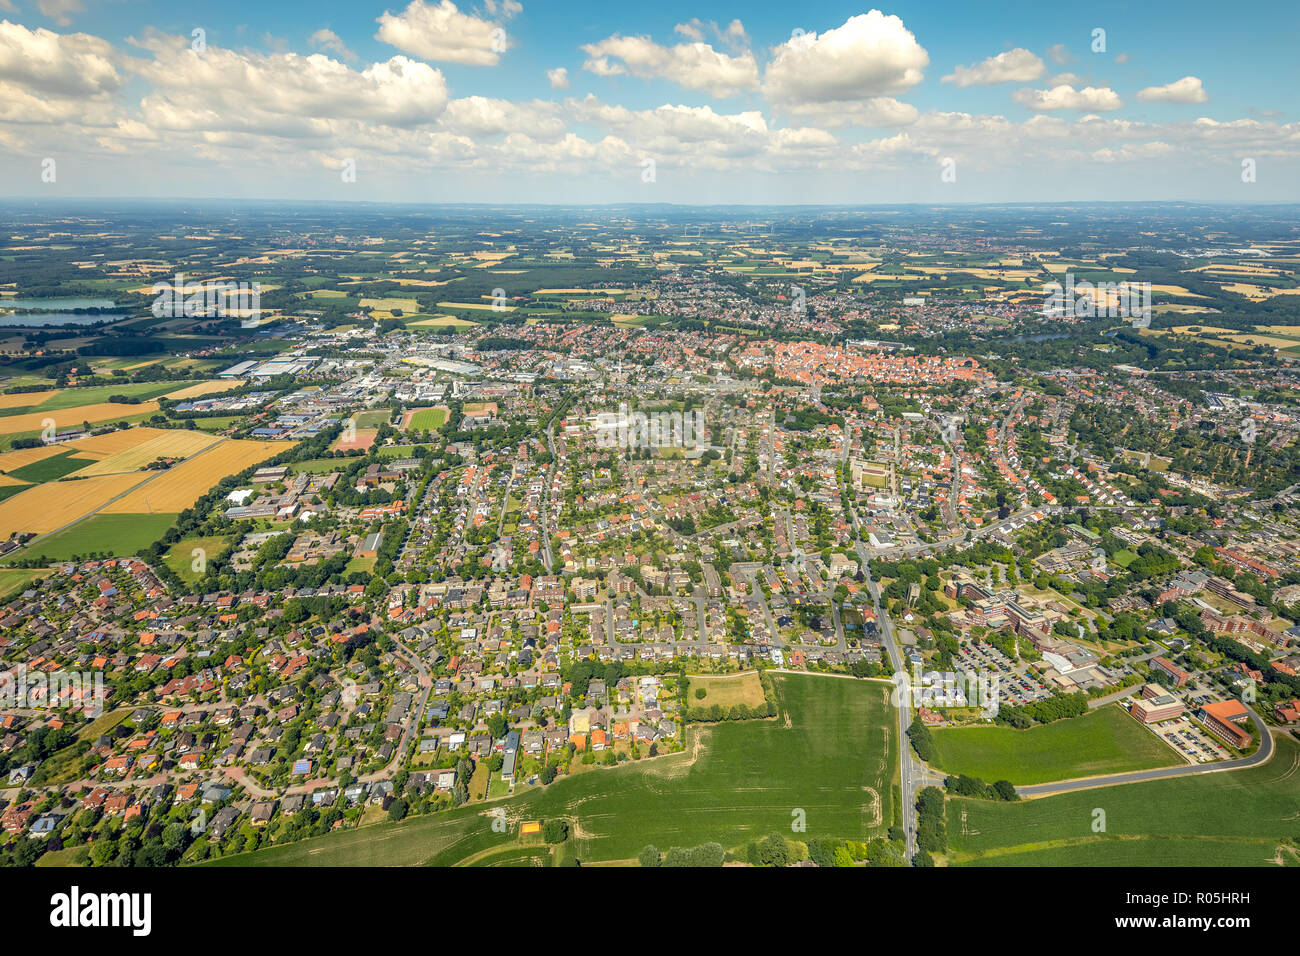 Aerial view, overview Warendorf, Münsterland, North Rhine-Westphalia, Germany, Europe, Warendorf, DEU, birds-eyes view, aerial view, aerial photograph - Stock Image